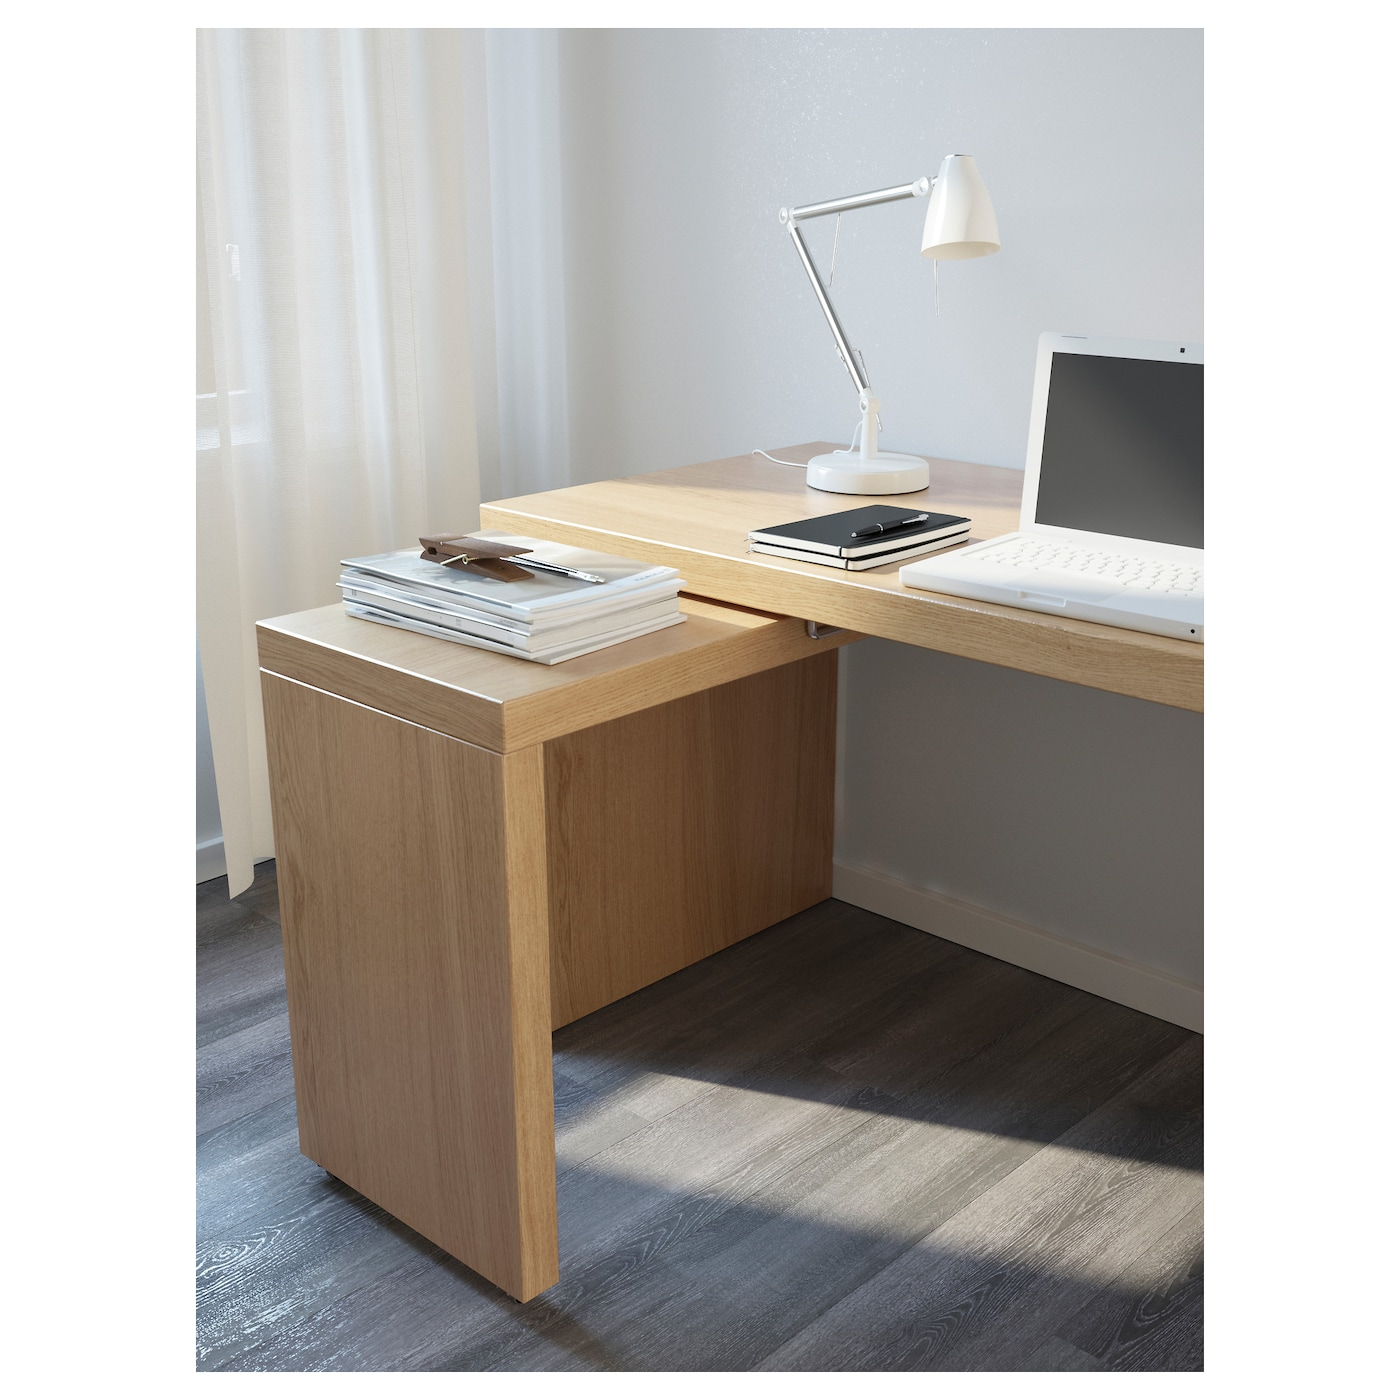 Desk With Pull Out Table Malm Desk With Pullout Panel Oak Veneer 151X65 Cm  Ikea